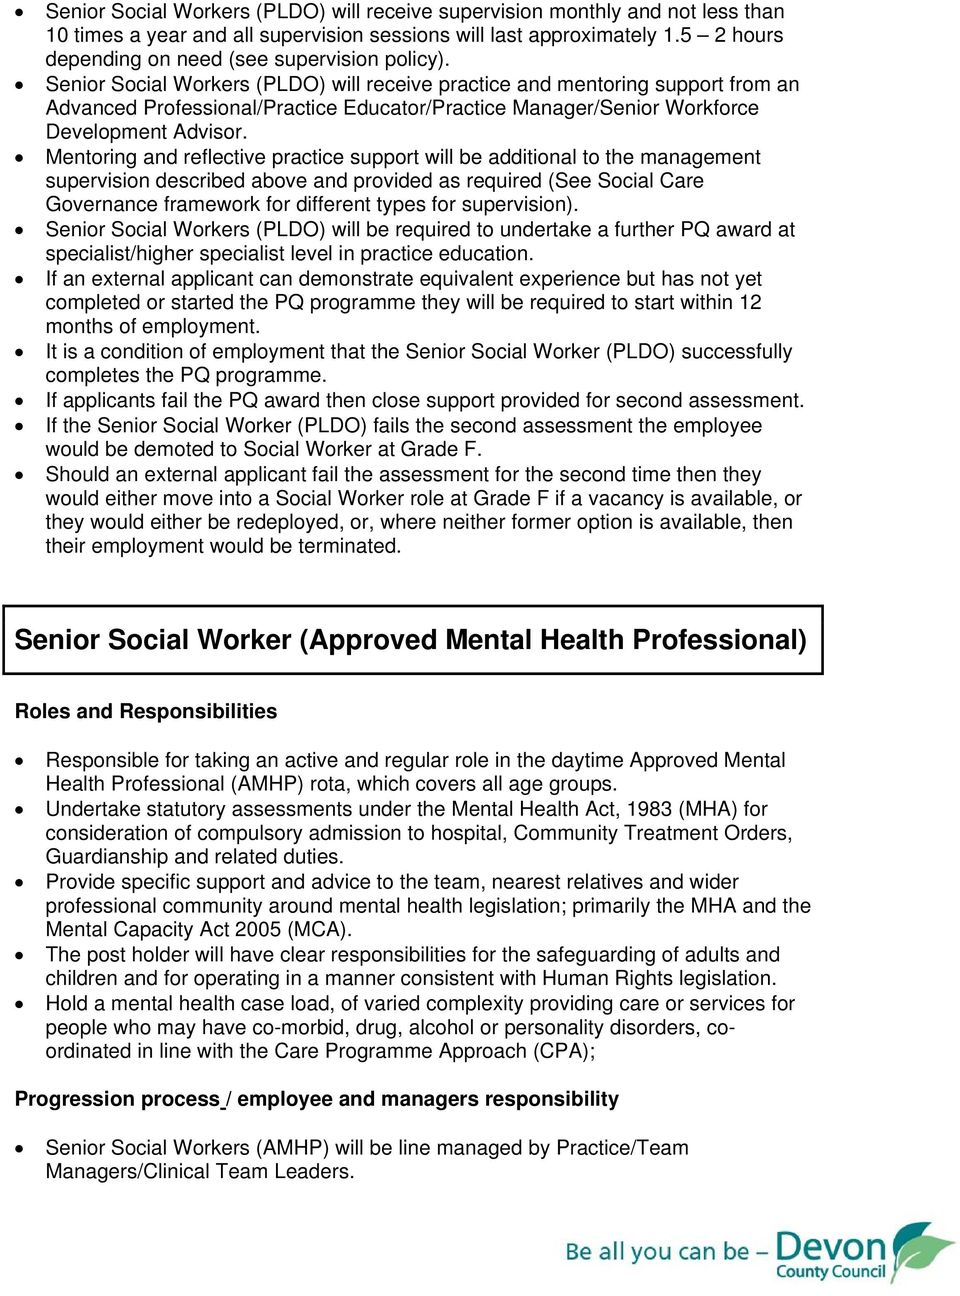 Senior Social Workers (PLDO) will receive practice and mentoring support from an Advanced Professional/Practice Educator/Practice Manager/Senior Workforce Development Advisor.